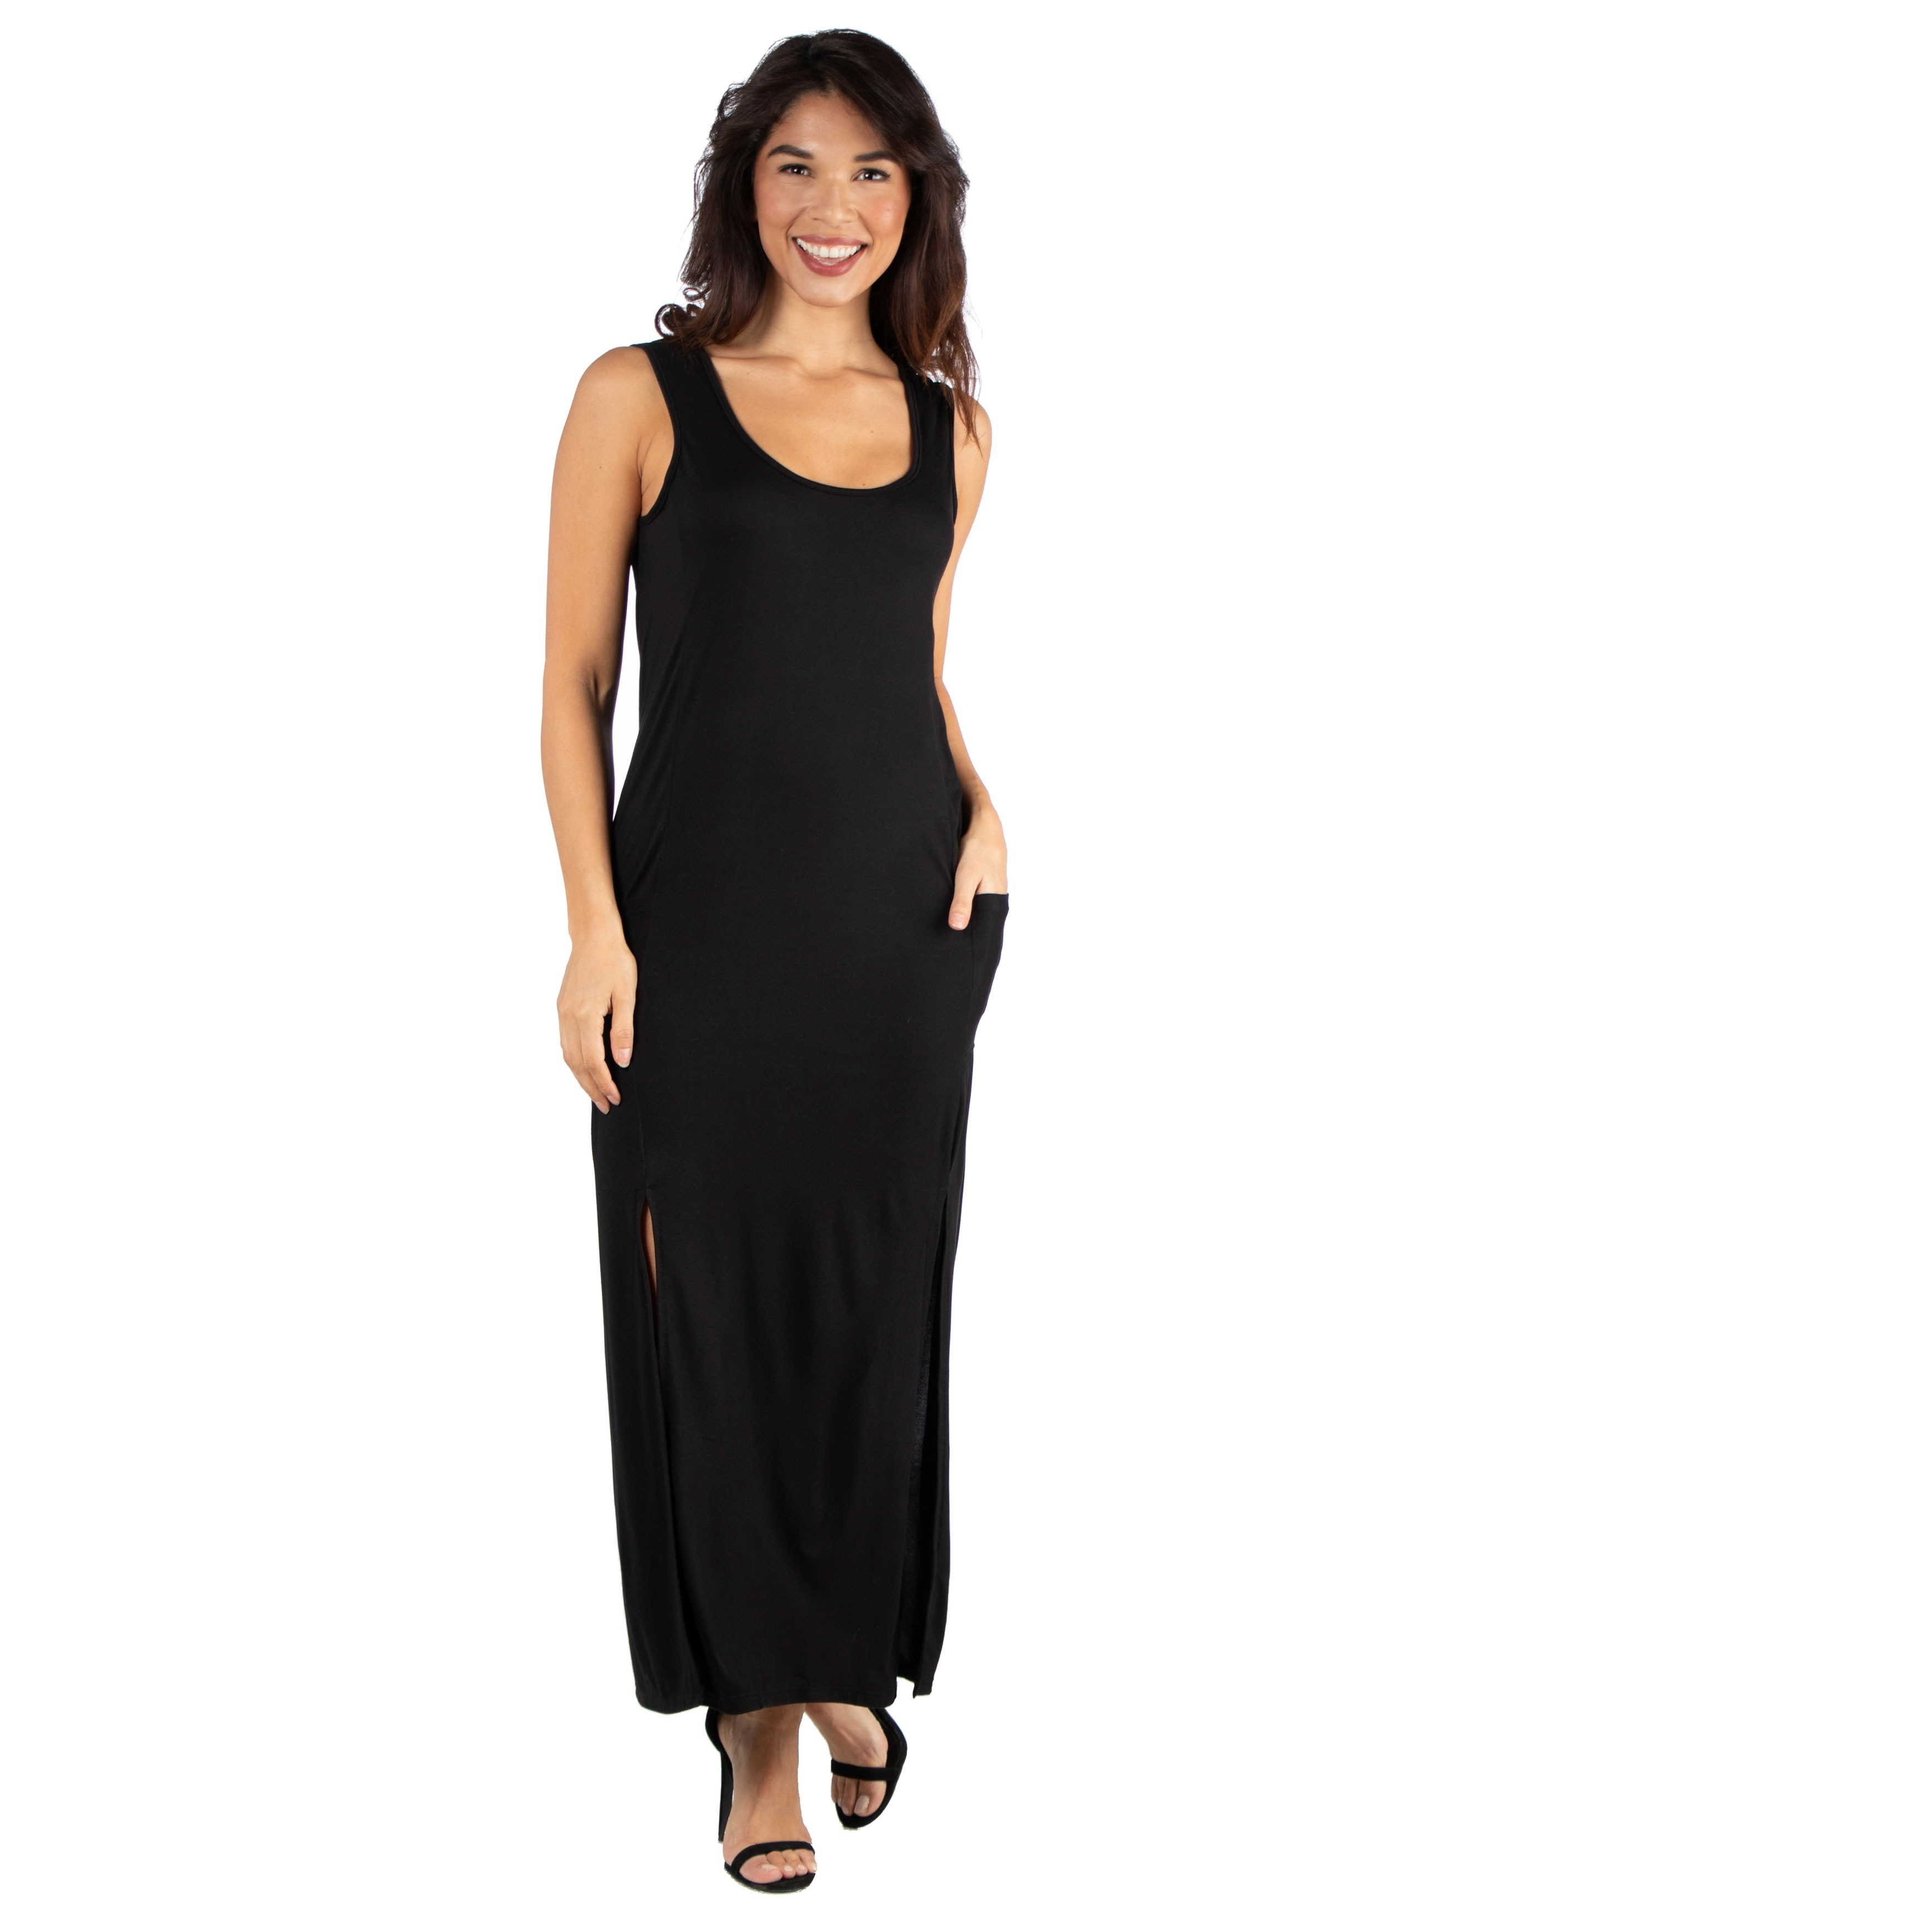 988400301c 24seven Comfort Apparel Sleeveless Black Maxi Dress With Pockets and Double  Slits